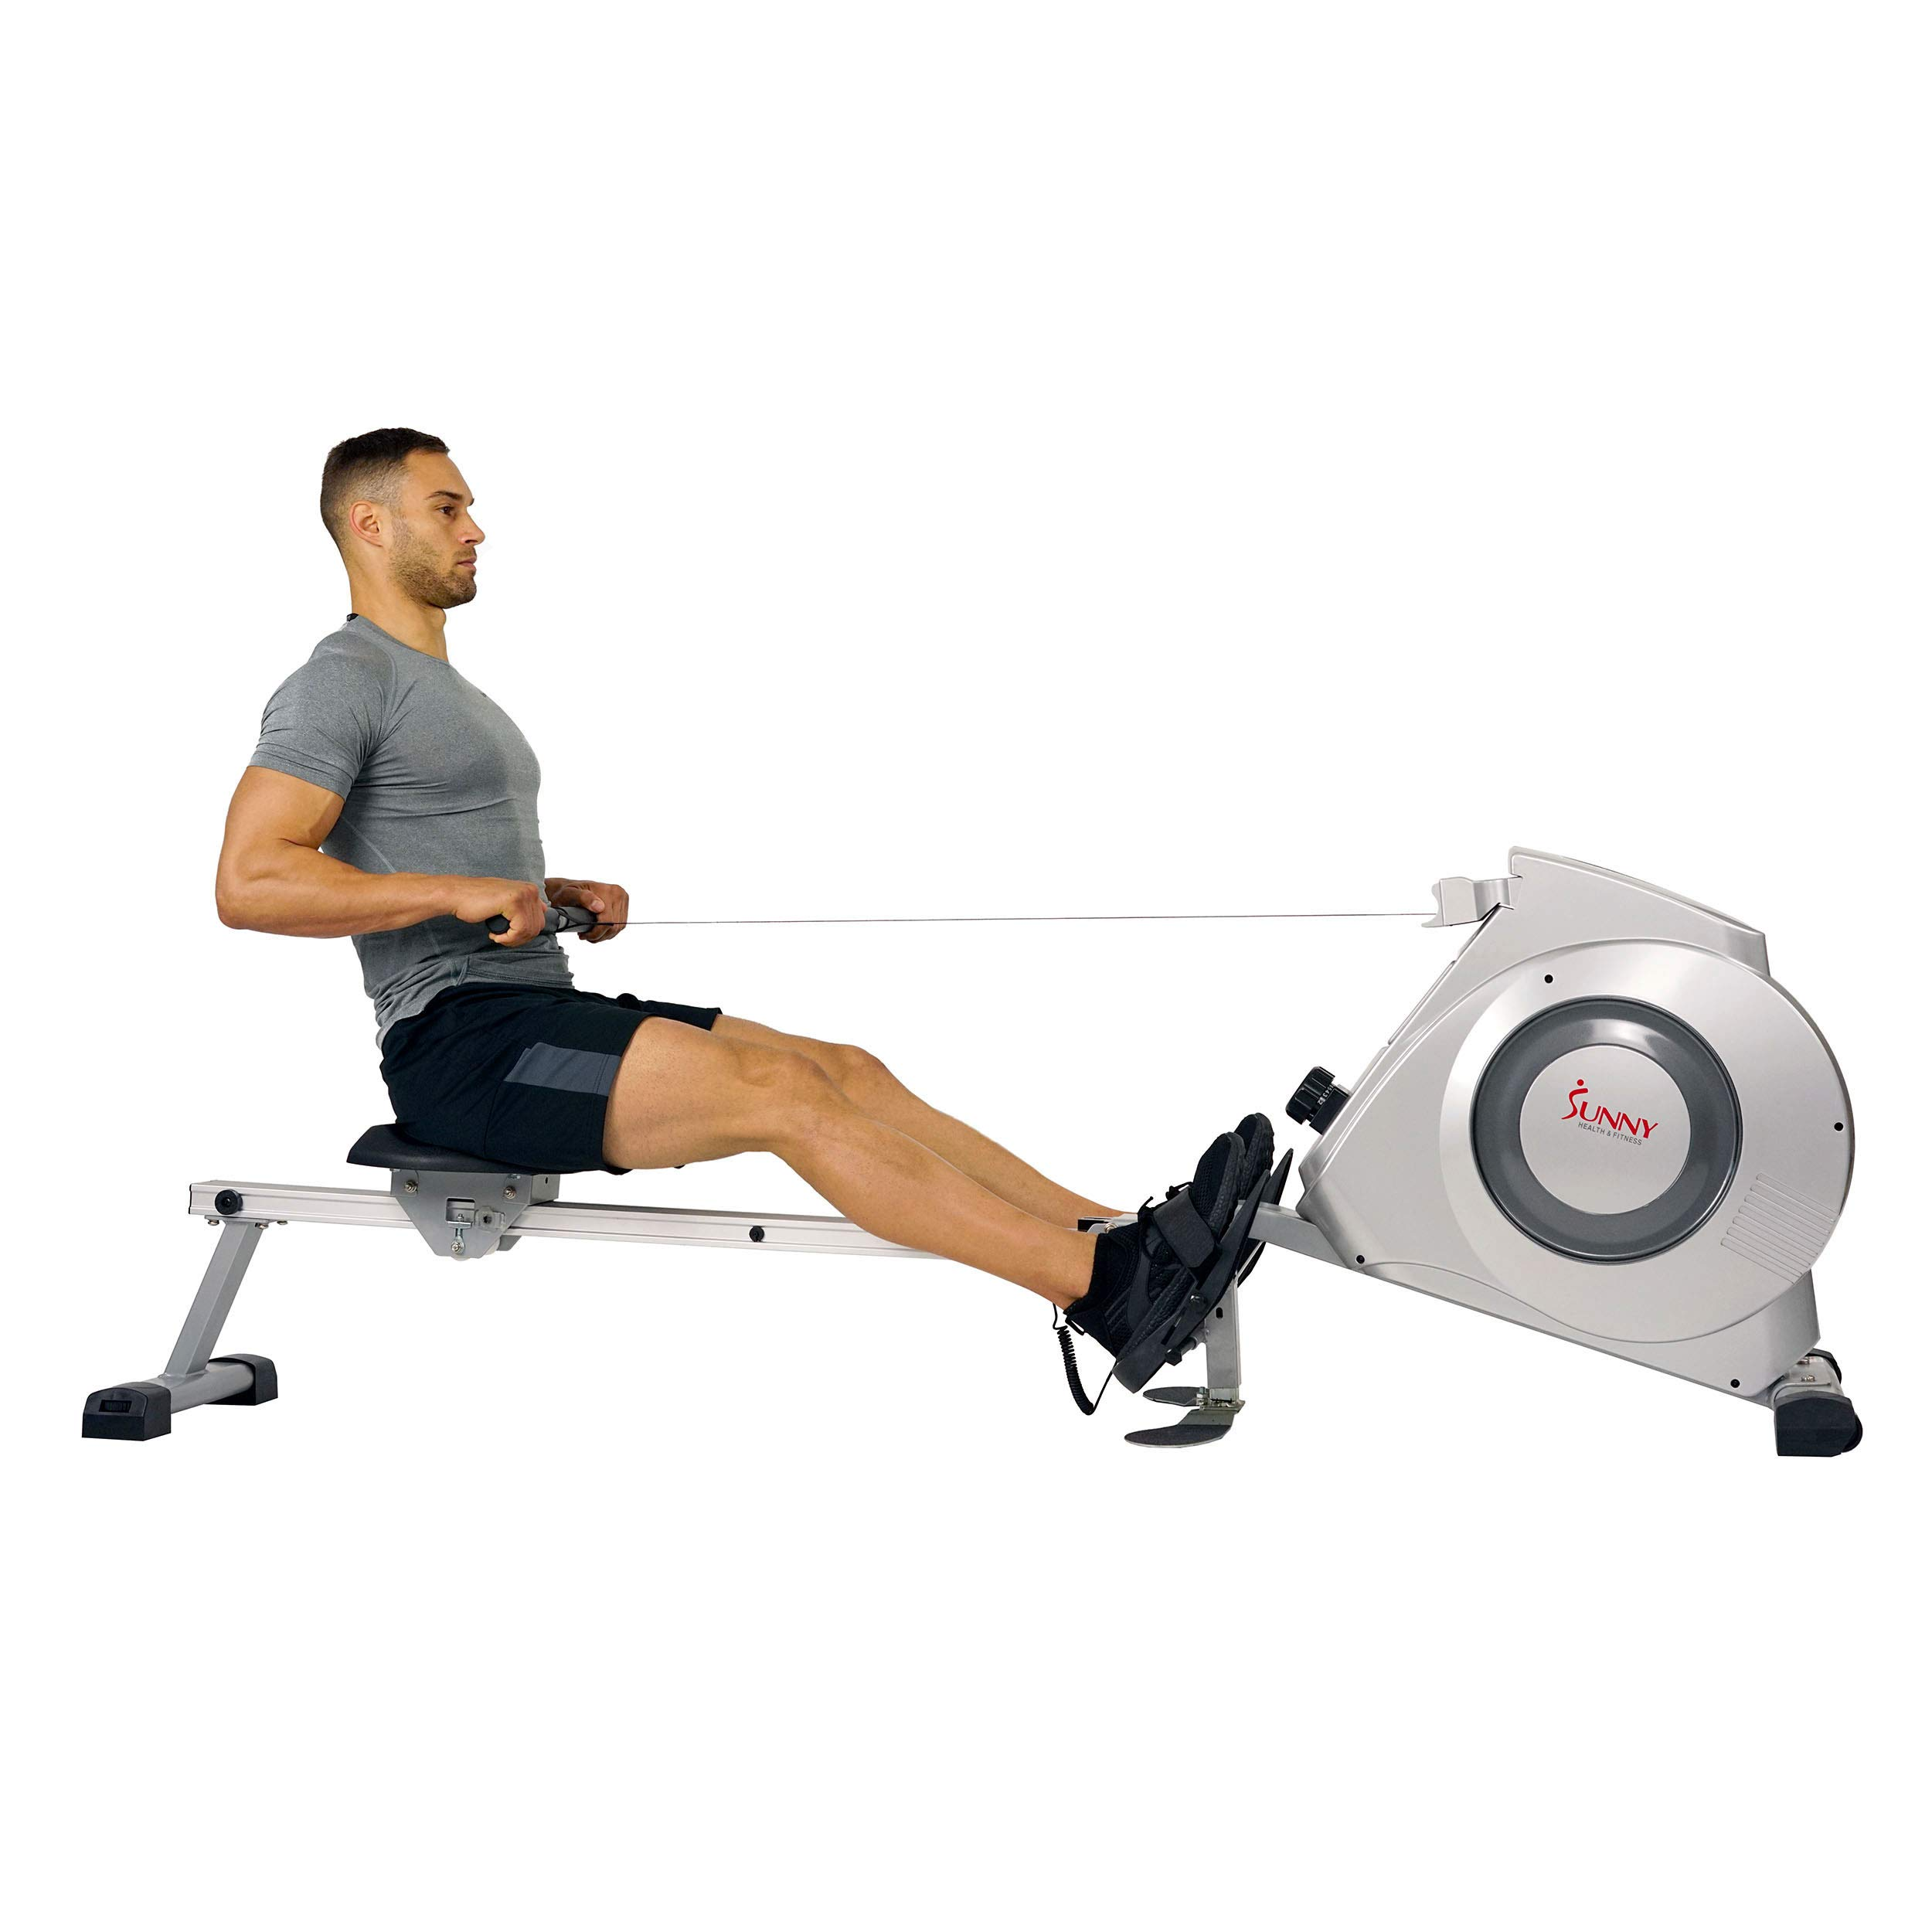 Sunny Health & Fitness Magnetic Rowing Machine w/ Digital Monitor, 300 LB Weight Capacity, Dual Function Multi-Exercise Foot Plates and Portability Wheels -  SF-RW5612 by Sunny Health & Fitness